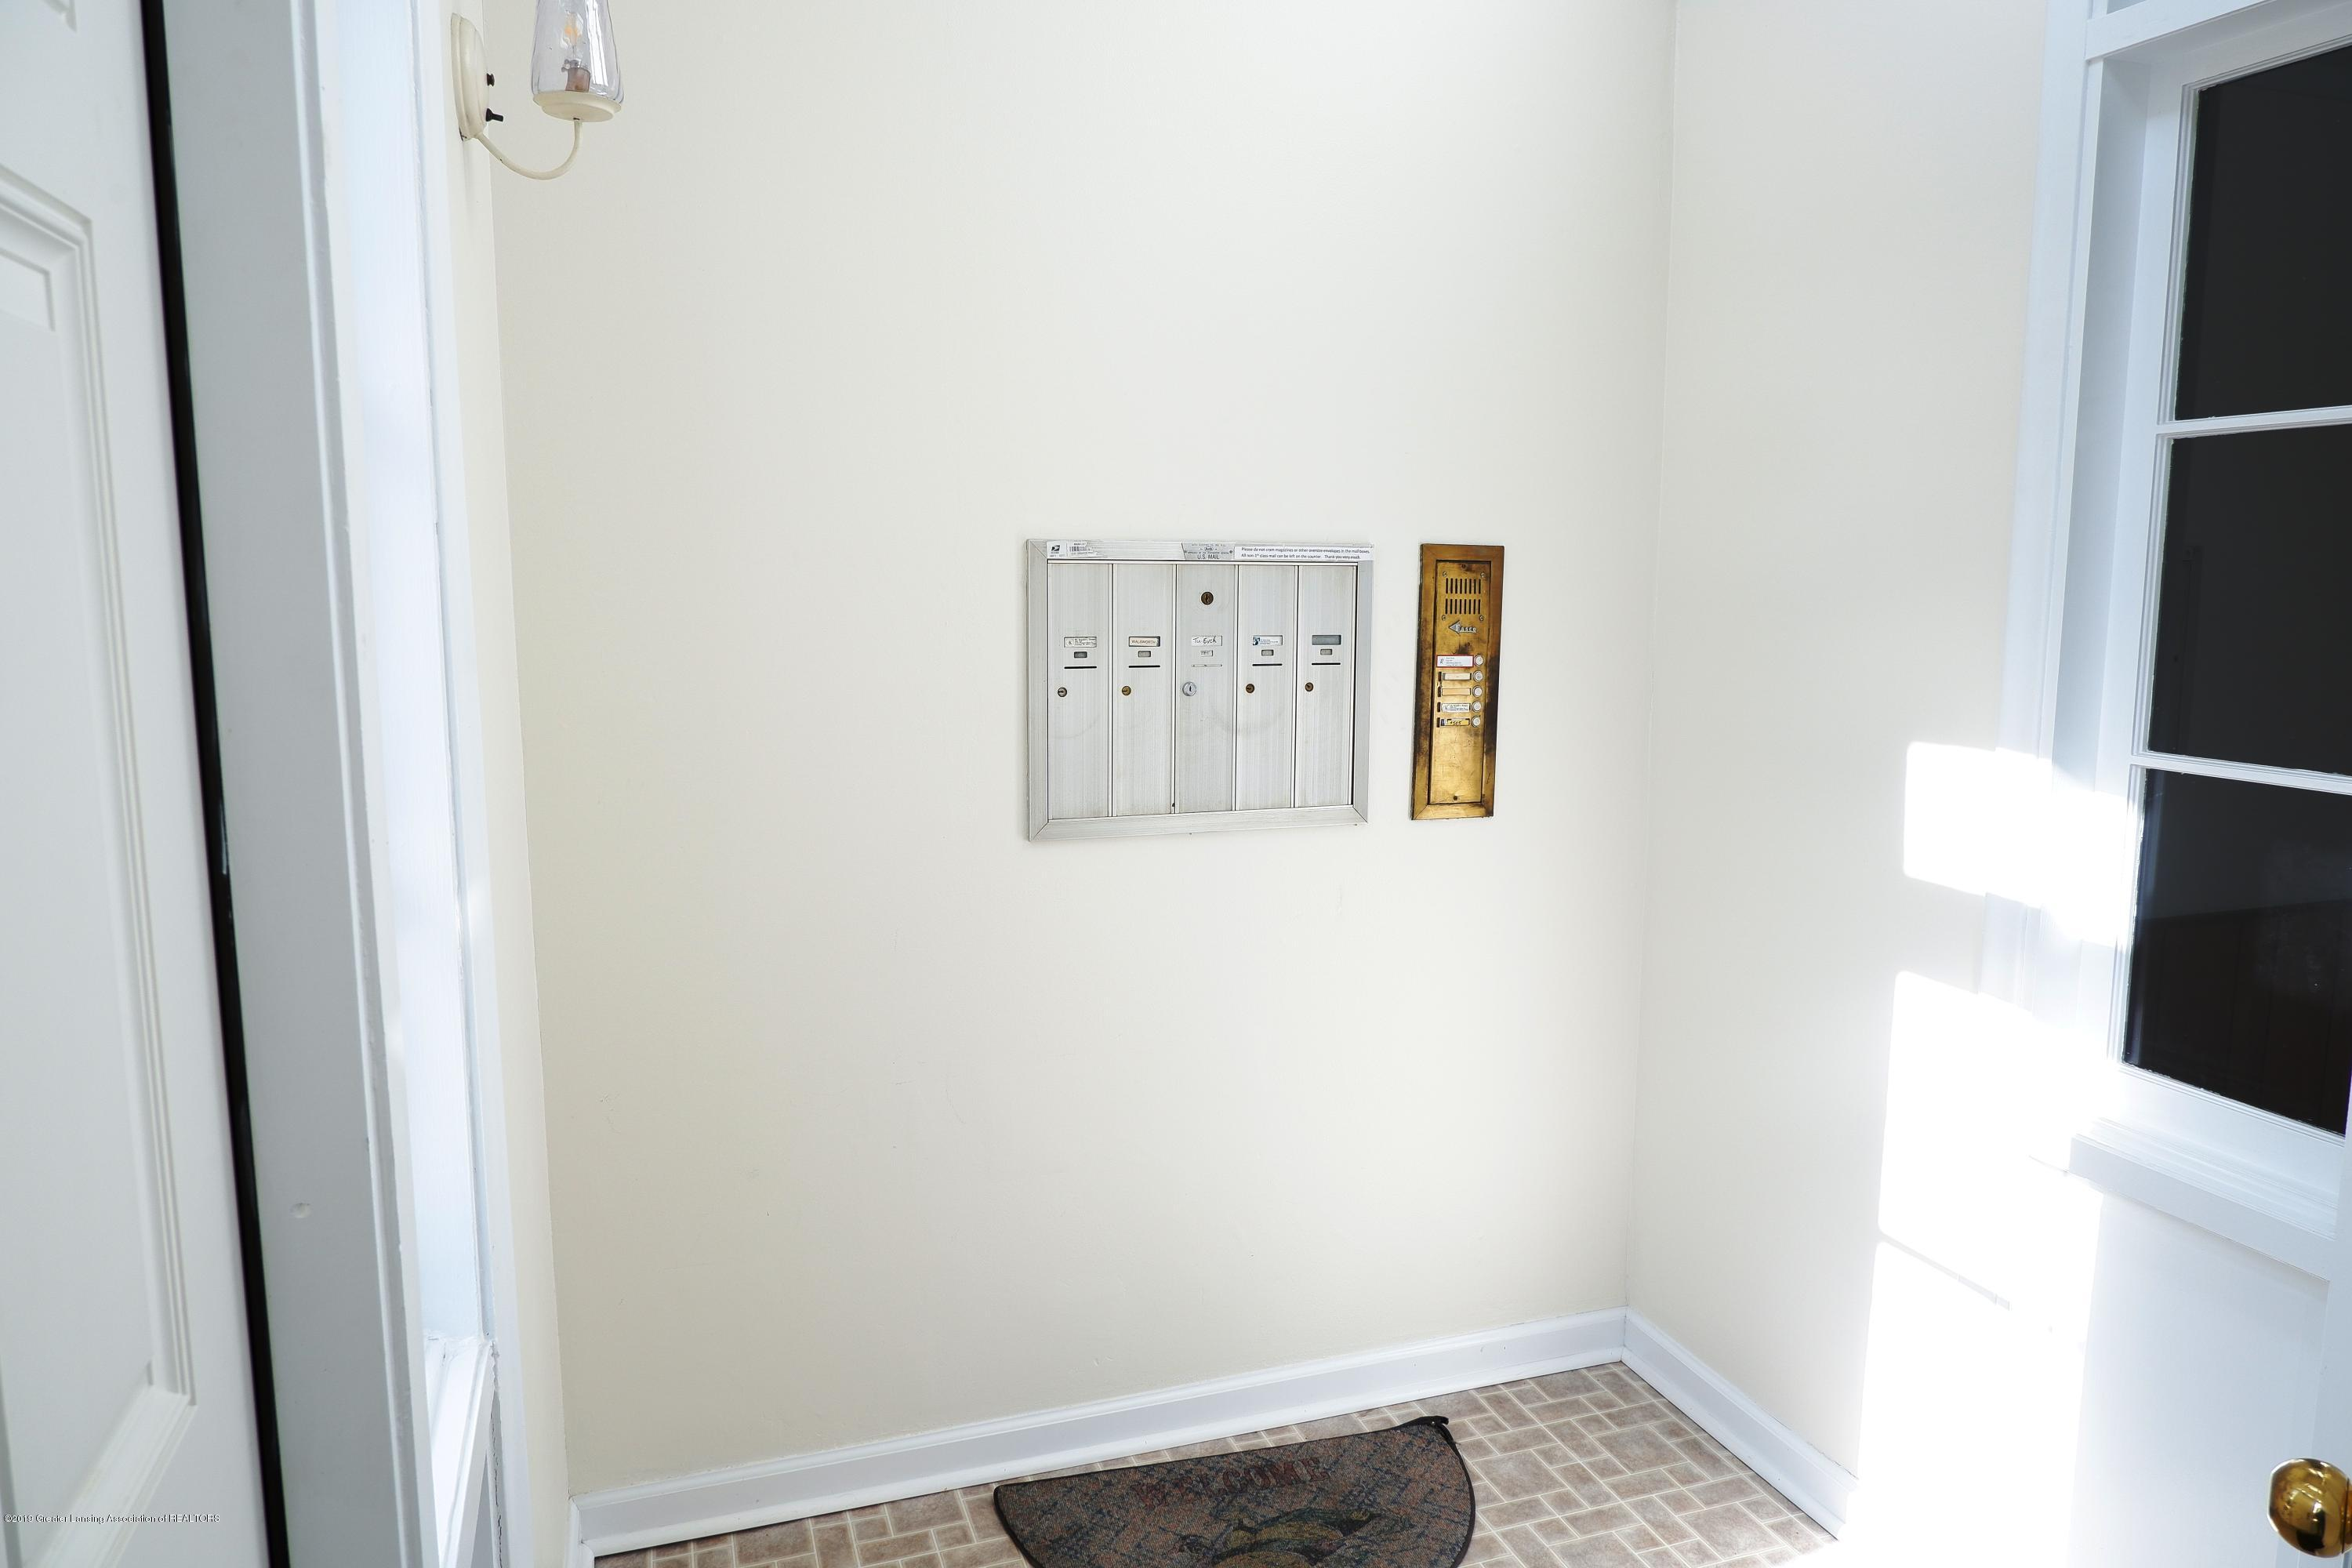 3333 Moores River Dr Apt 508 - Vestibule with mail slots - 2